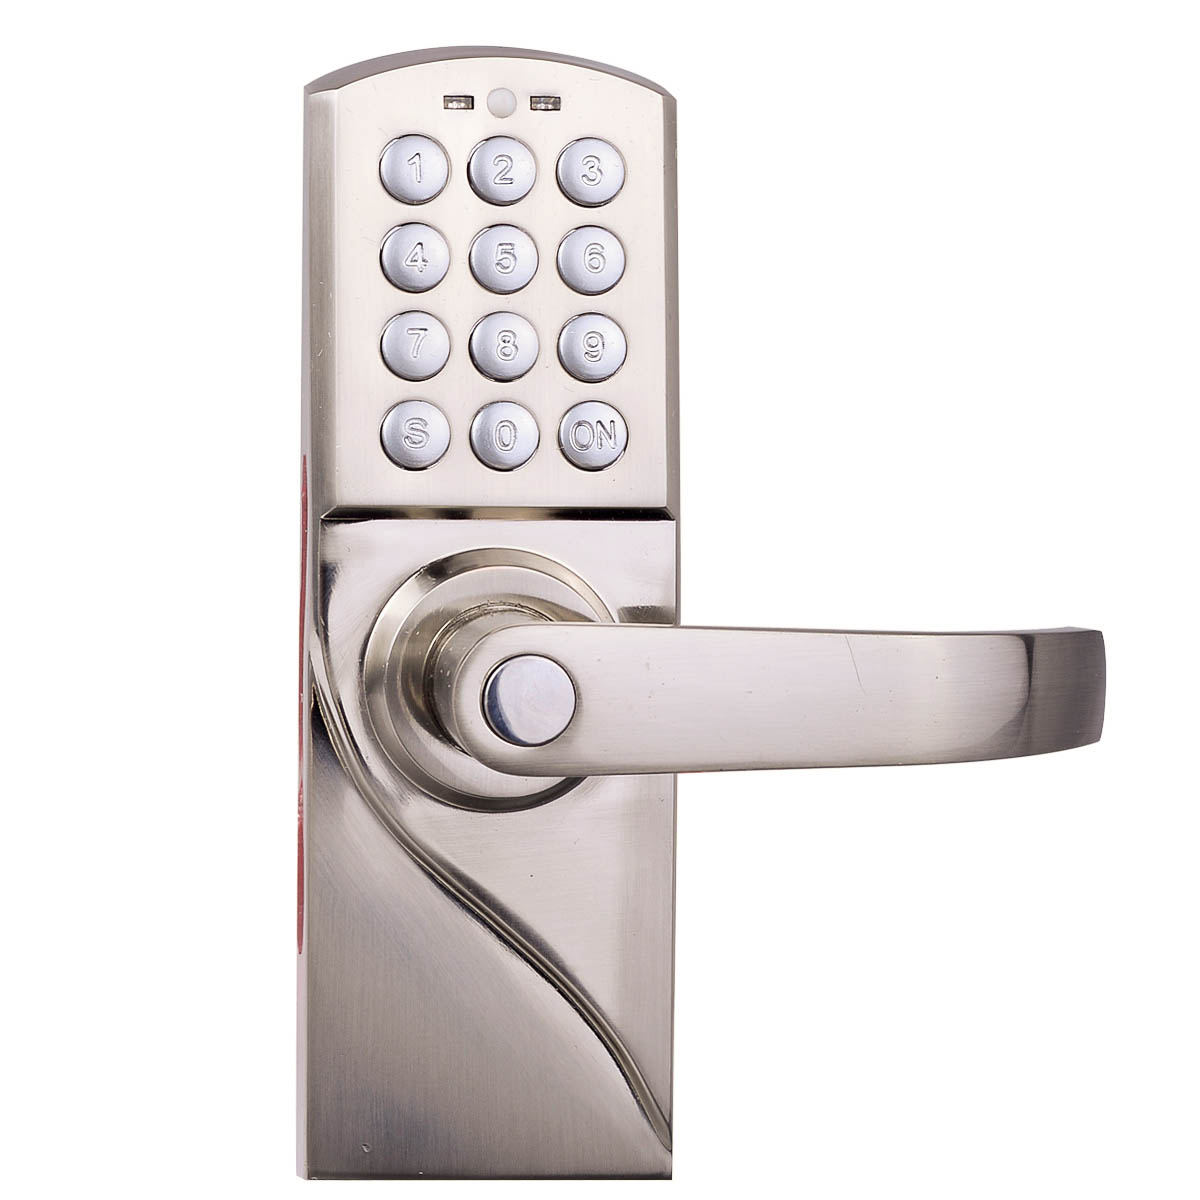 keypad door knob photo - 2